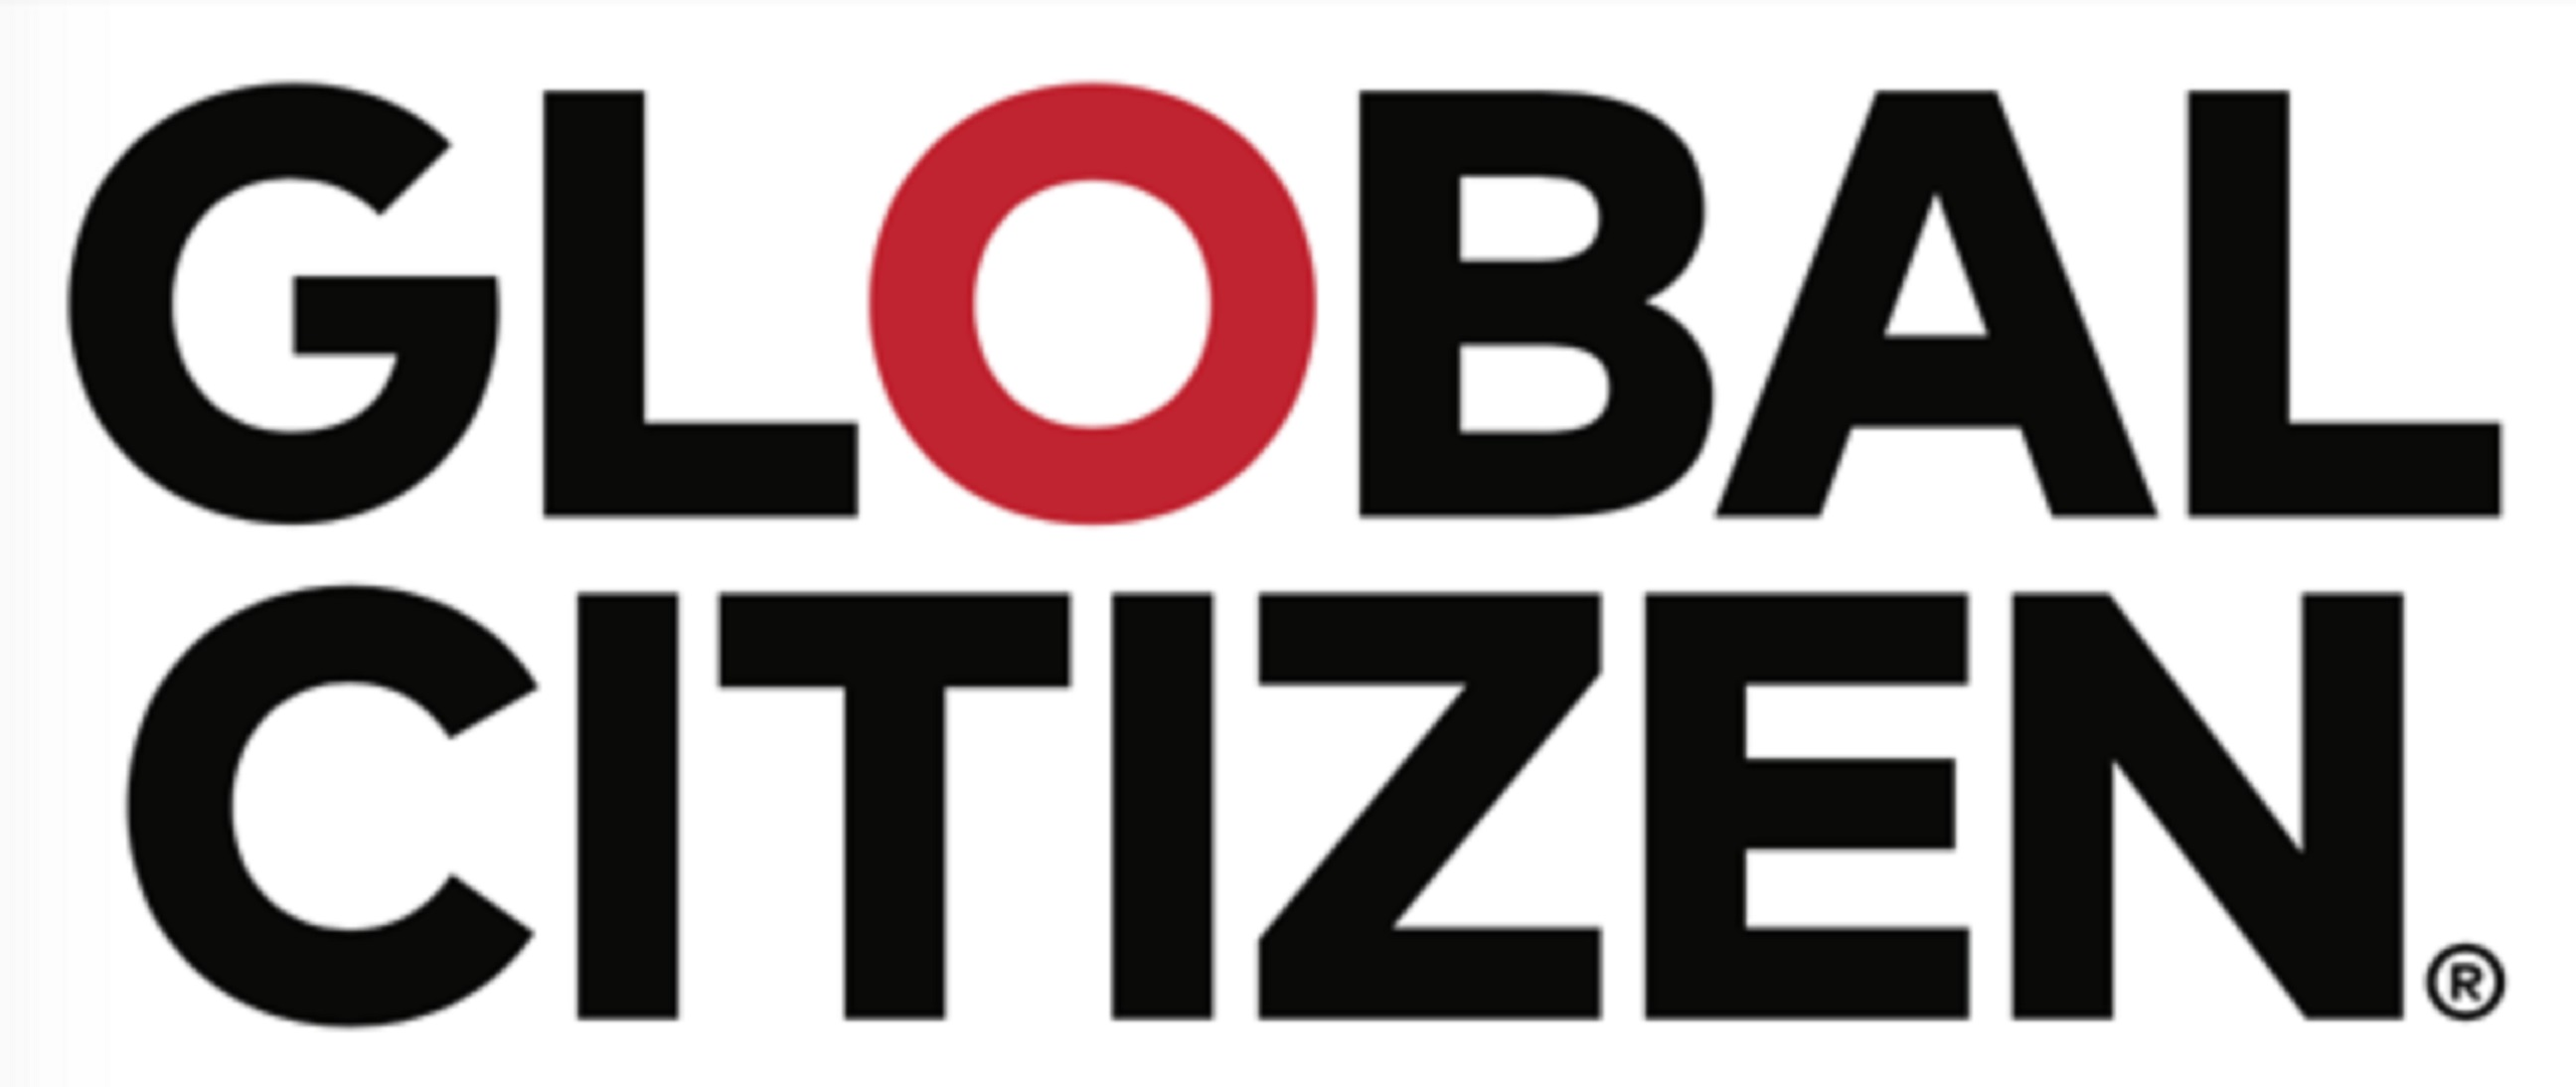 HeadCount & Global Citizen Announce Partnership to Mobilize Voters Ahead of 2020 Election